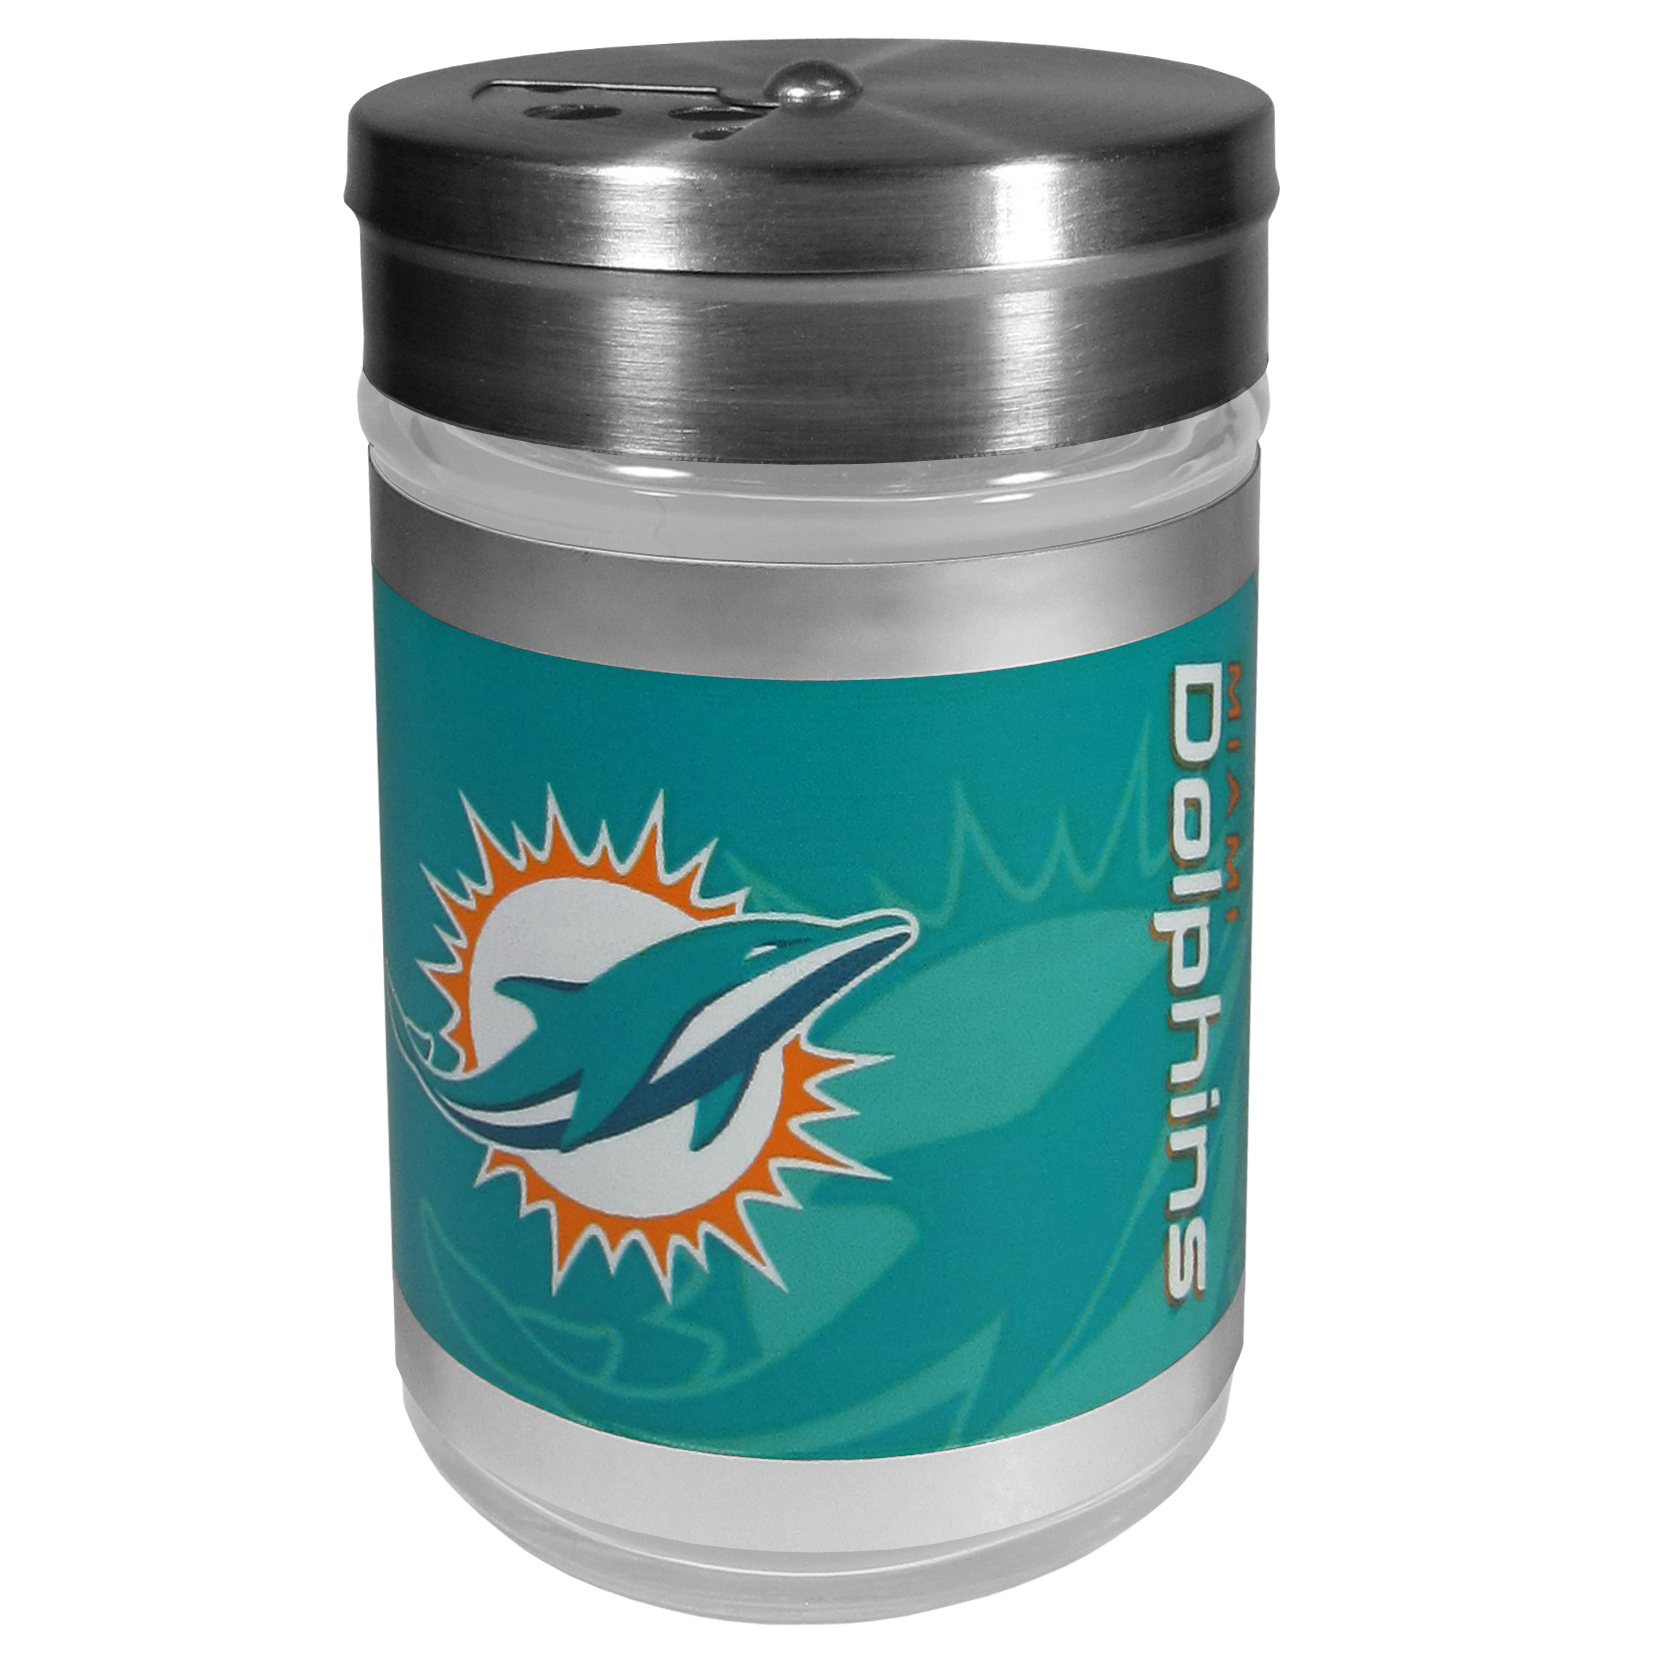 Miami Dolphins Tailgater Season Shakers - Spice it up with our Miami Dolphins tailgater season shakers! This compact shaker is 2 inch tall with a twist top that closes off the holes at the top making it perfect for travel preventing those messy spills. The shaker has wide holes perfect for keeping your pepper seeds or cheese toppings. The bright team graphics will make you the envy of the other fans while you are grilling up your tailgating goodies.